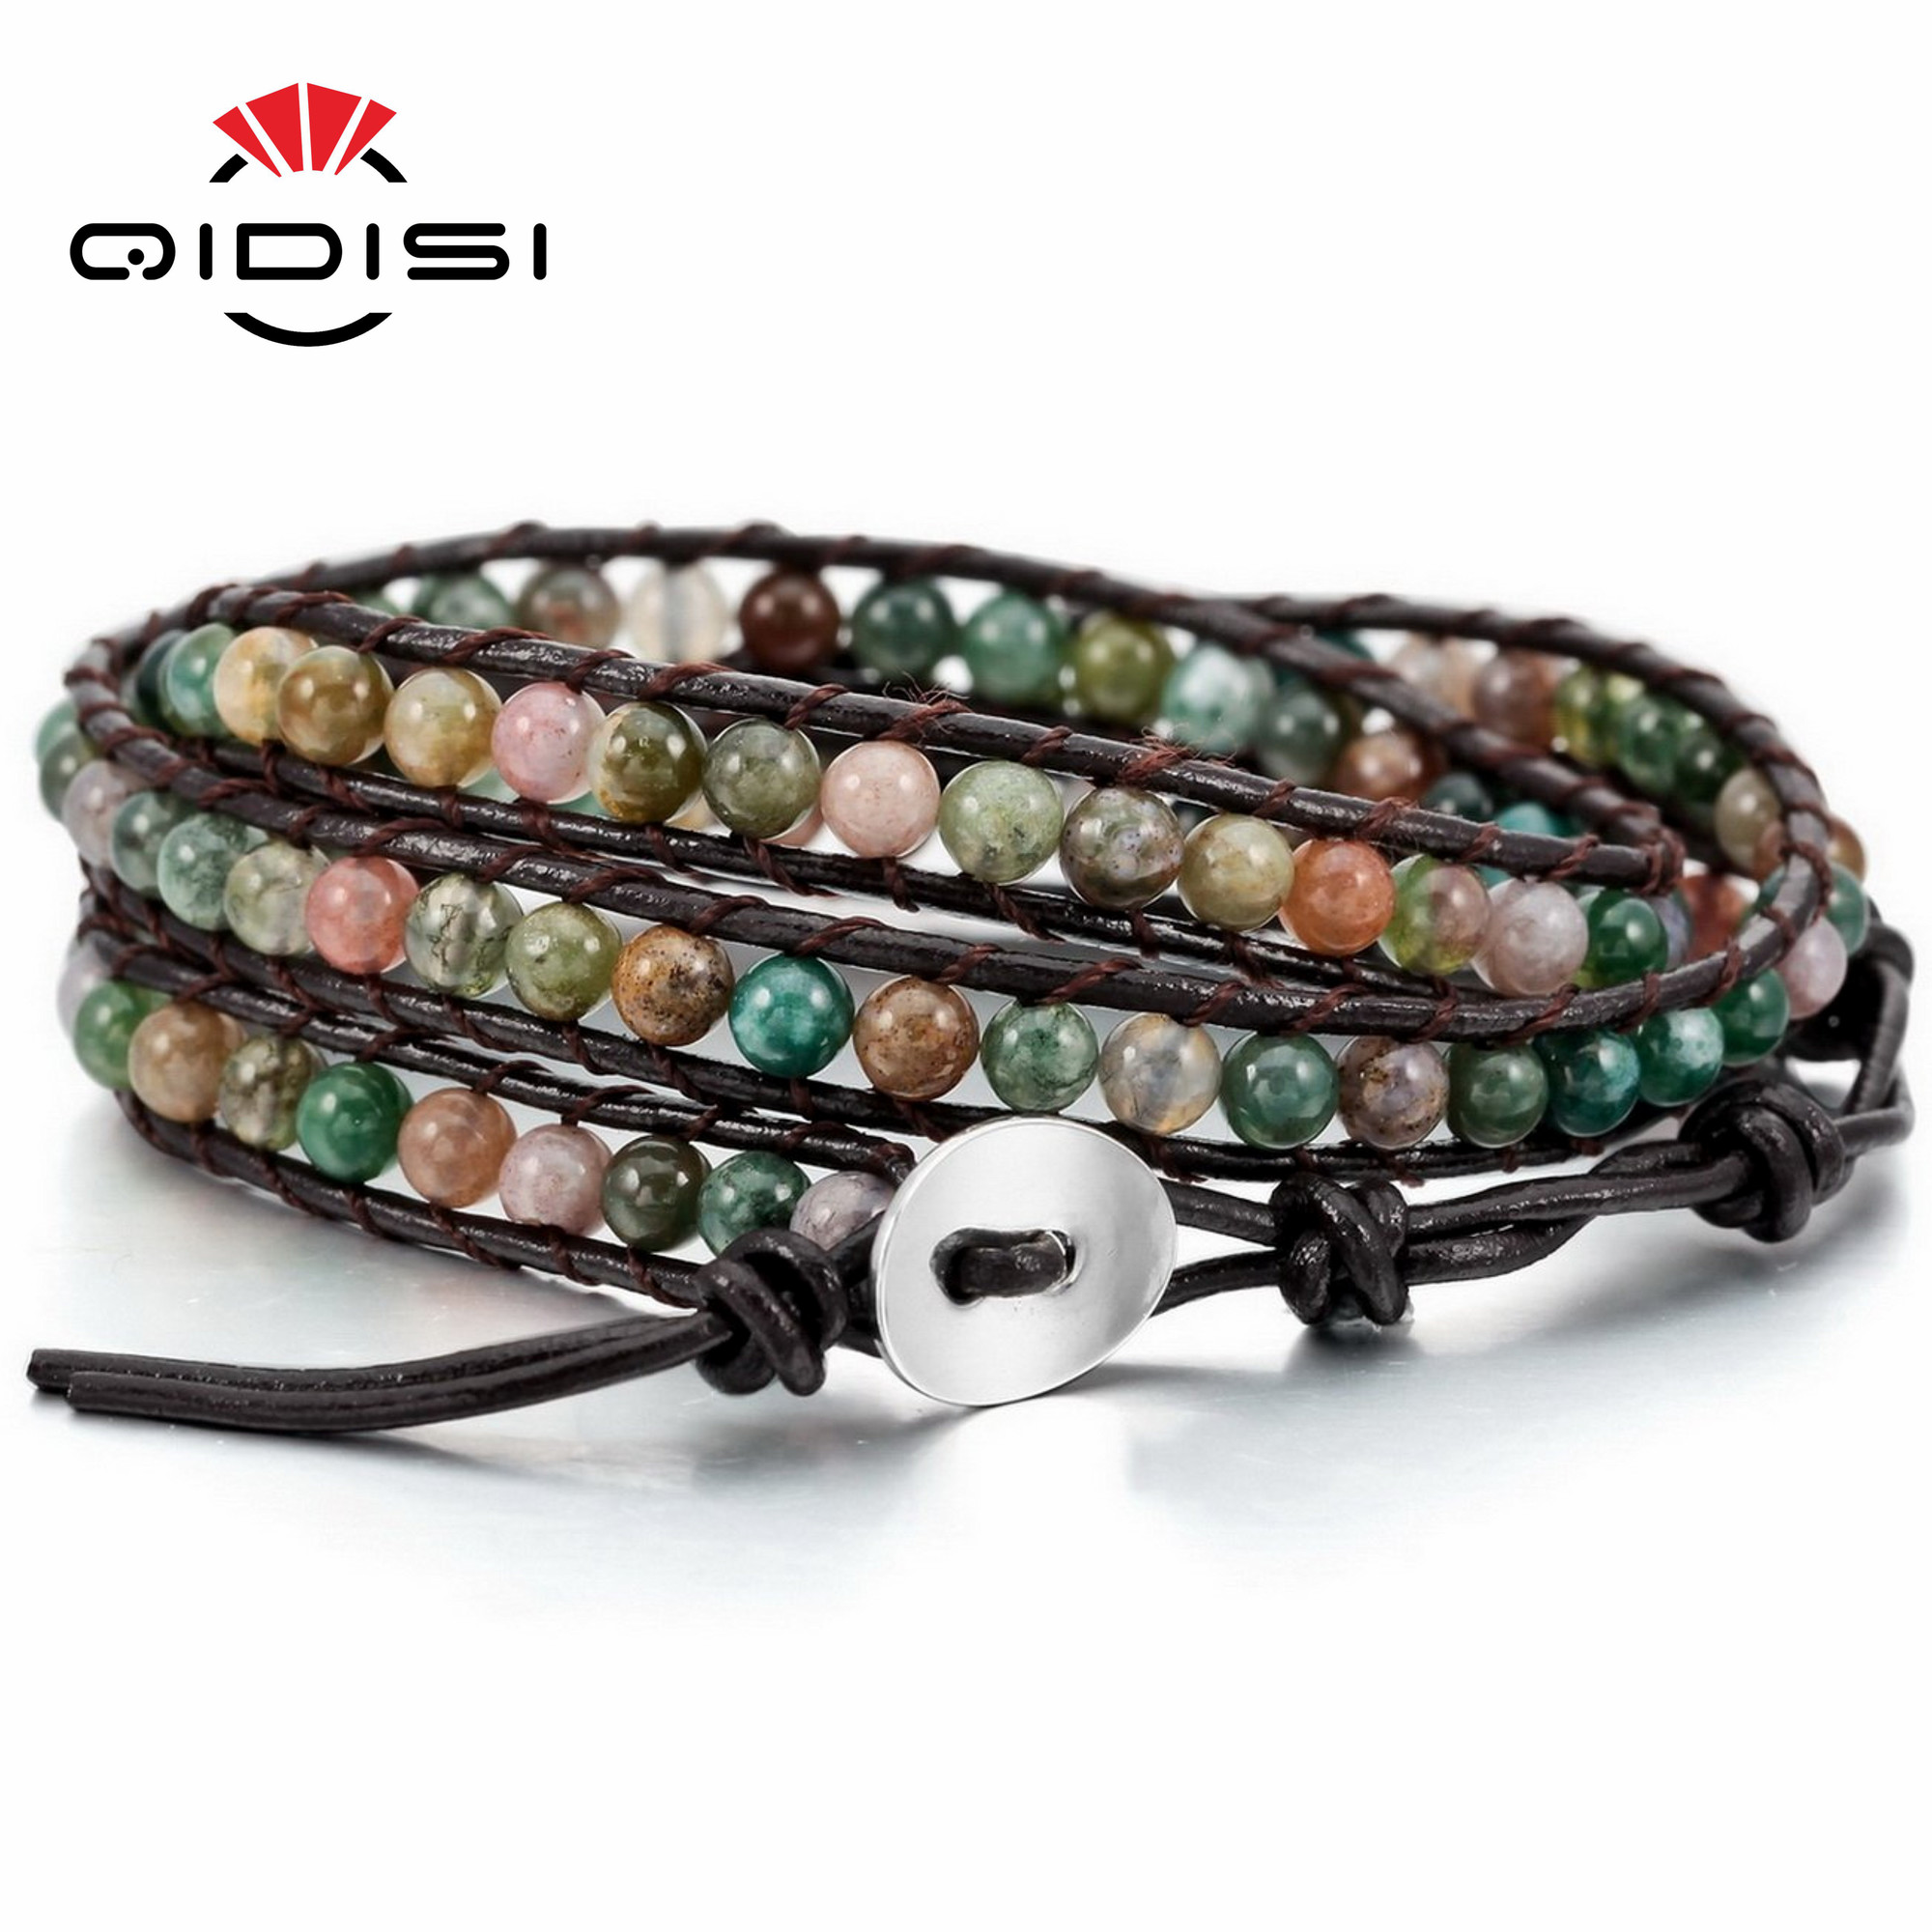 Stone Beads Alloy Genuine Leather Bracelet Men Women Bangle Cuff Rope Bead 3 Wrap Adjustable 5m 10m 20m 50m 2pin single 3pin 2811rgb 5pin rgbw extension 4pin rgb white rgb black wires connector cable for rgb led strip